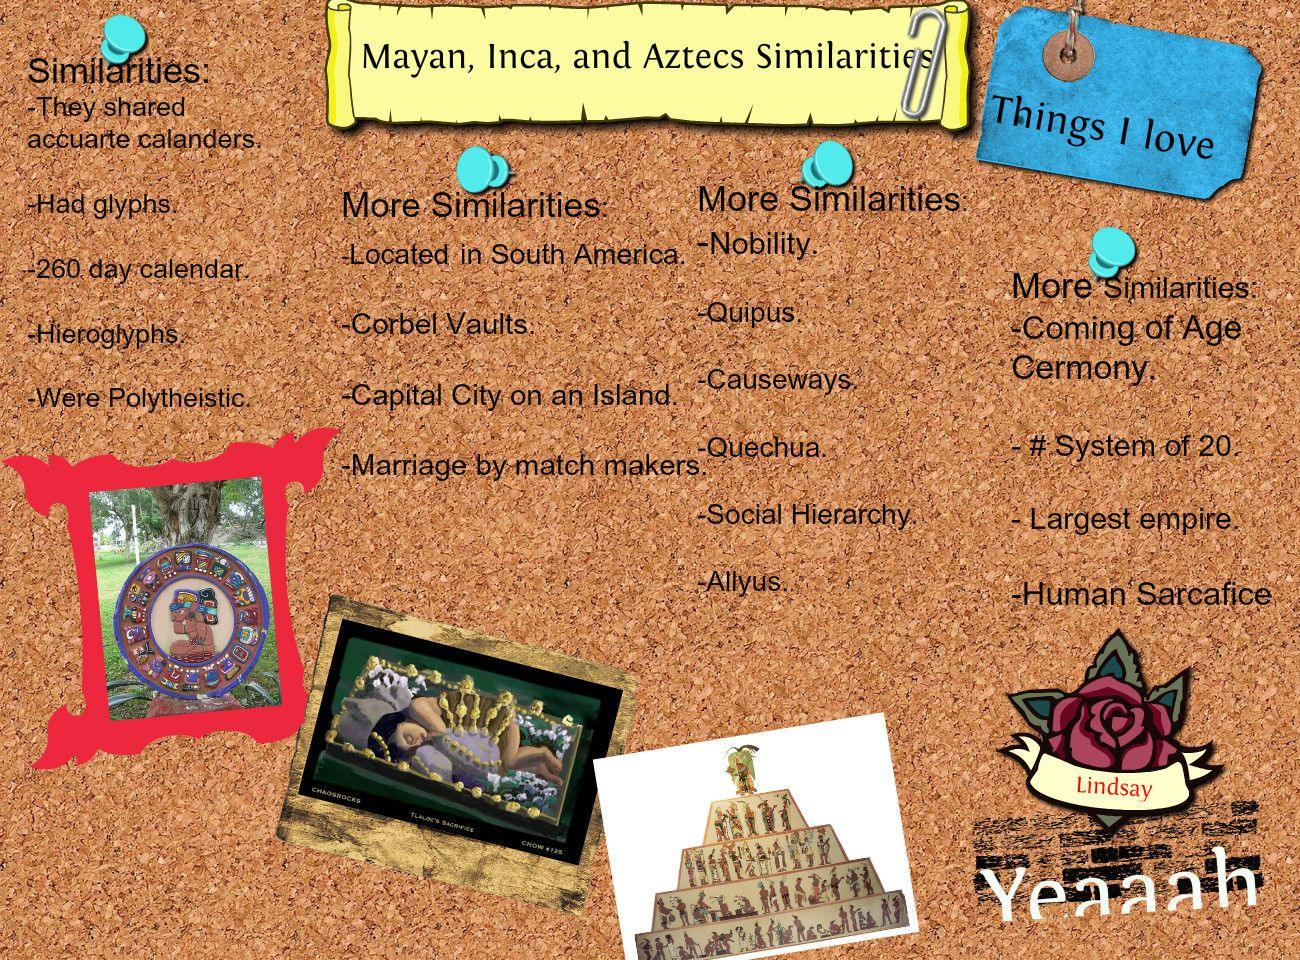 mayans incas and aztecs Food timeline--history notes: aztec, maya & inca foods.